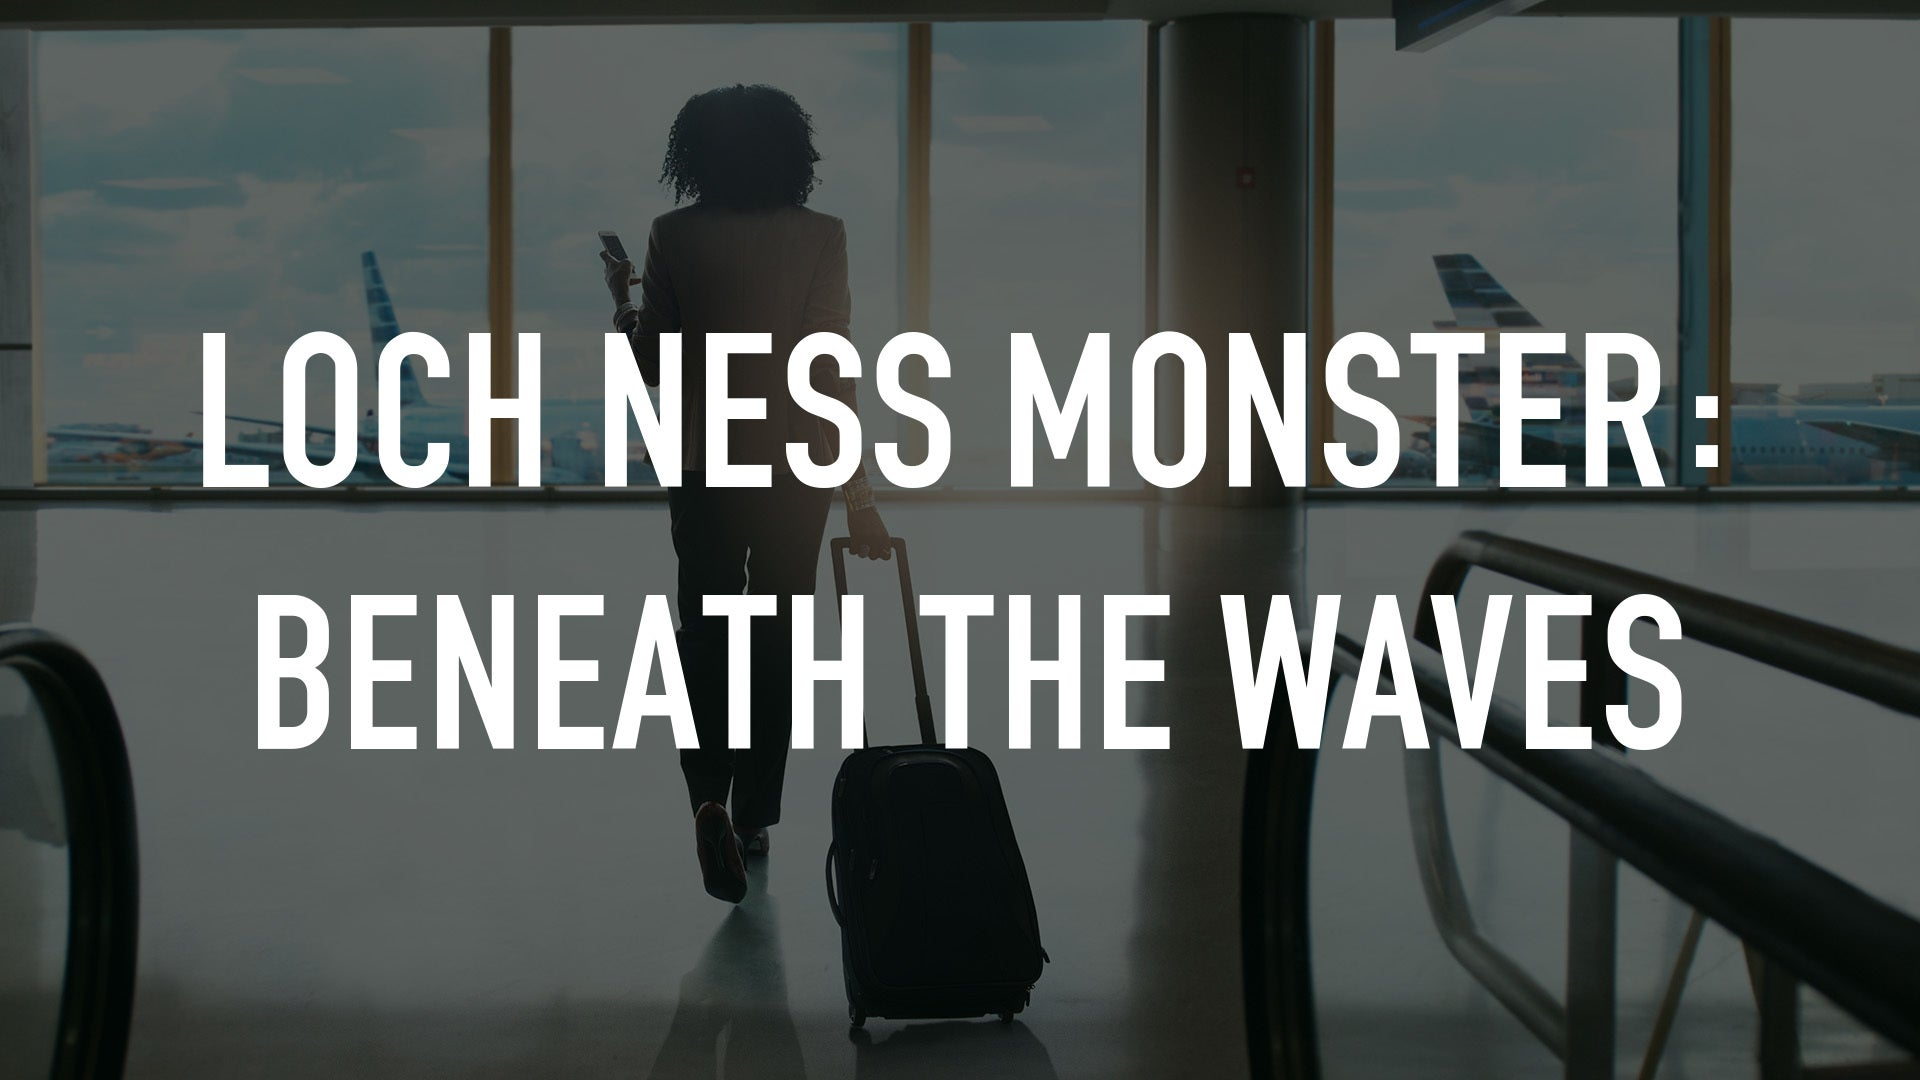 Loch Ness Monster: Beneath the Waves